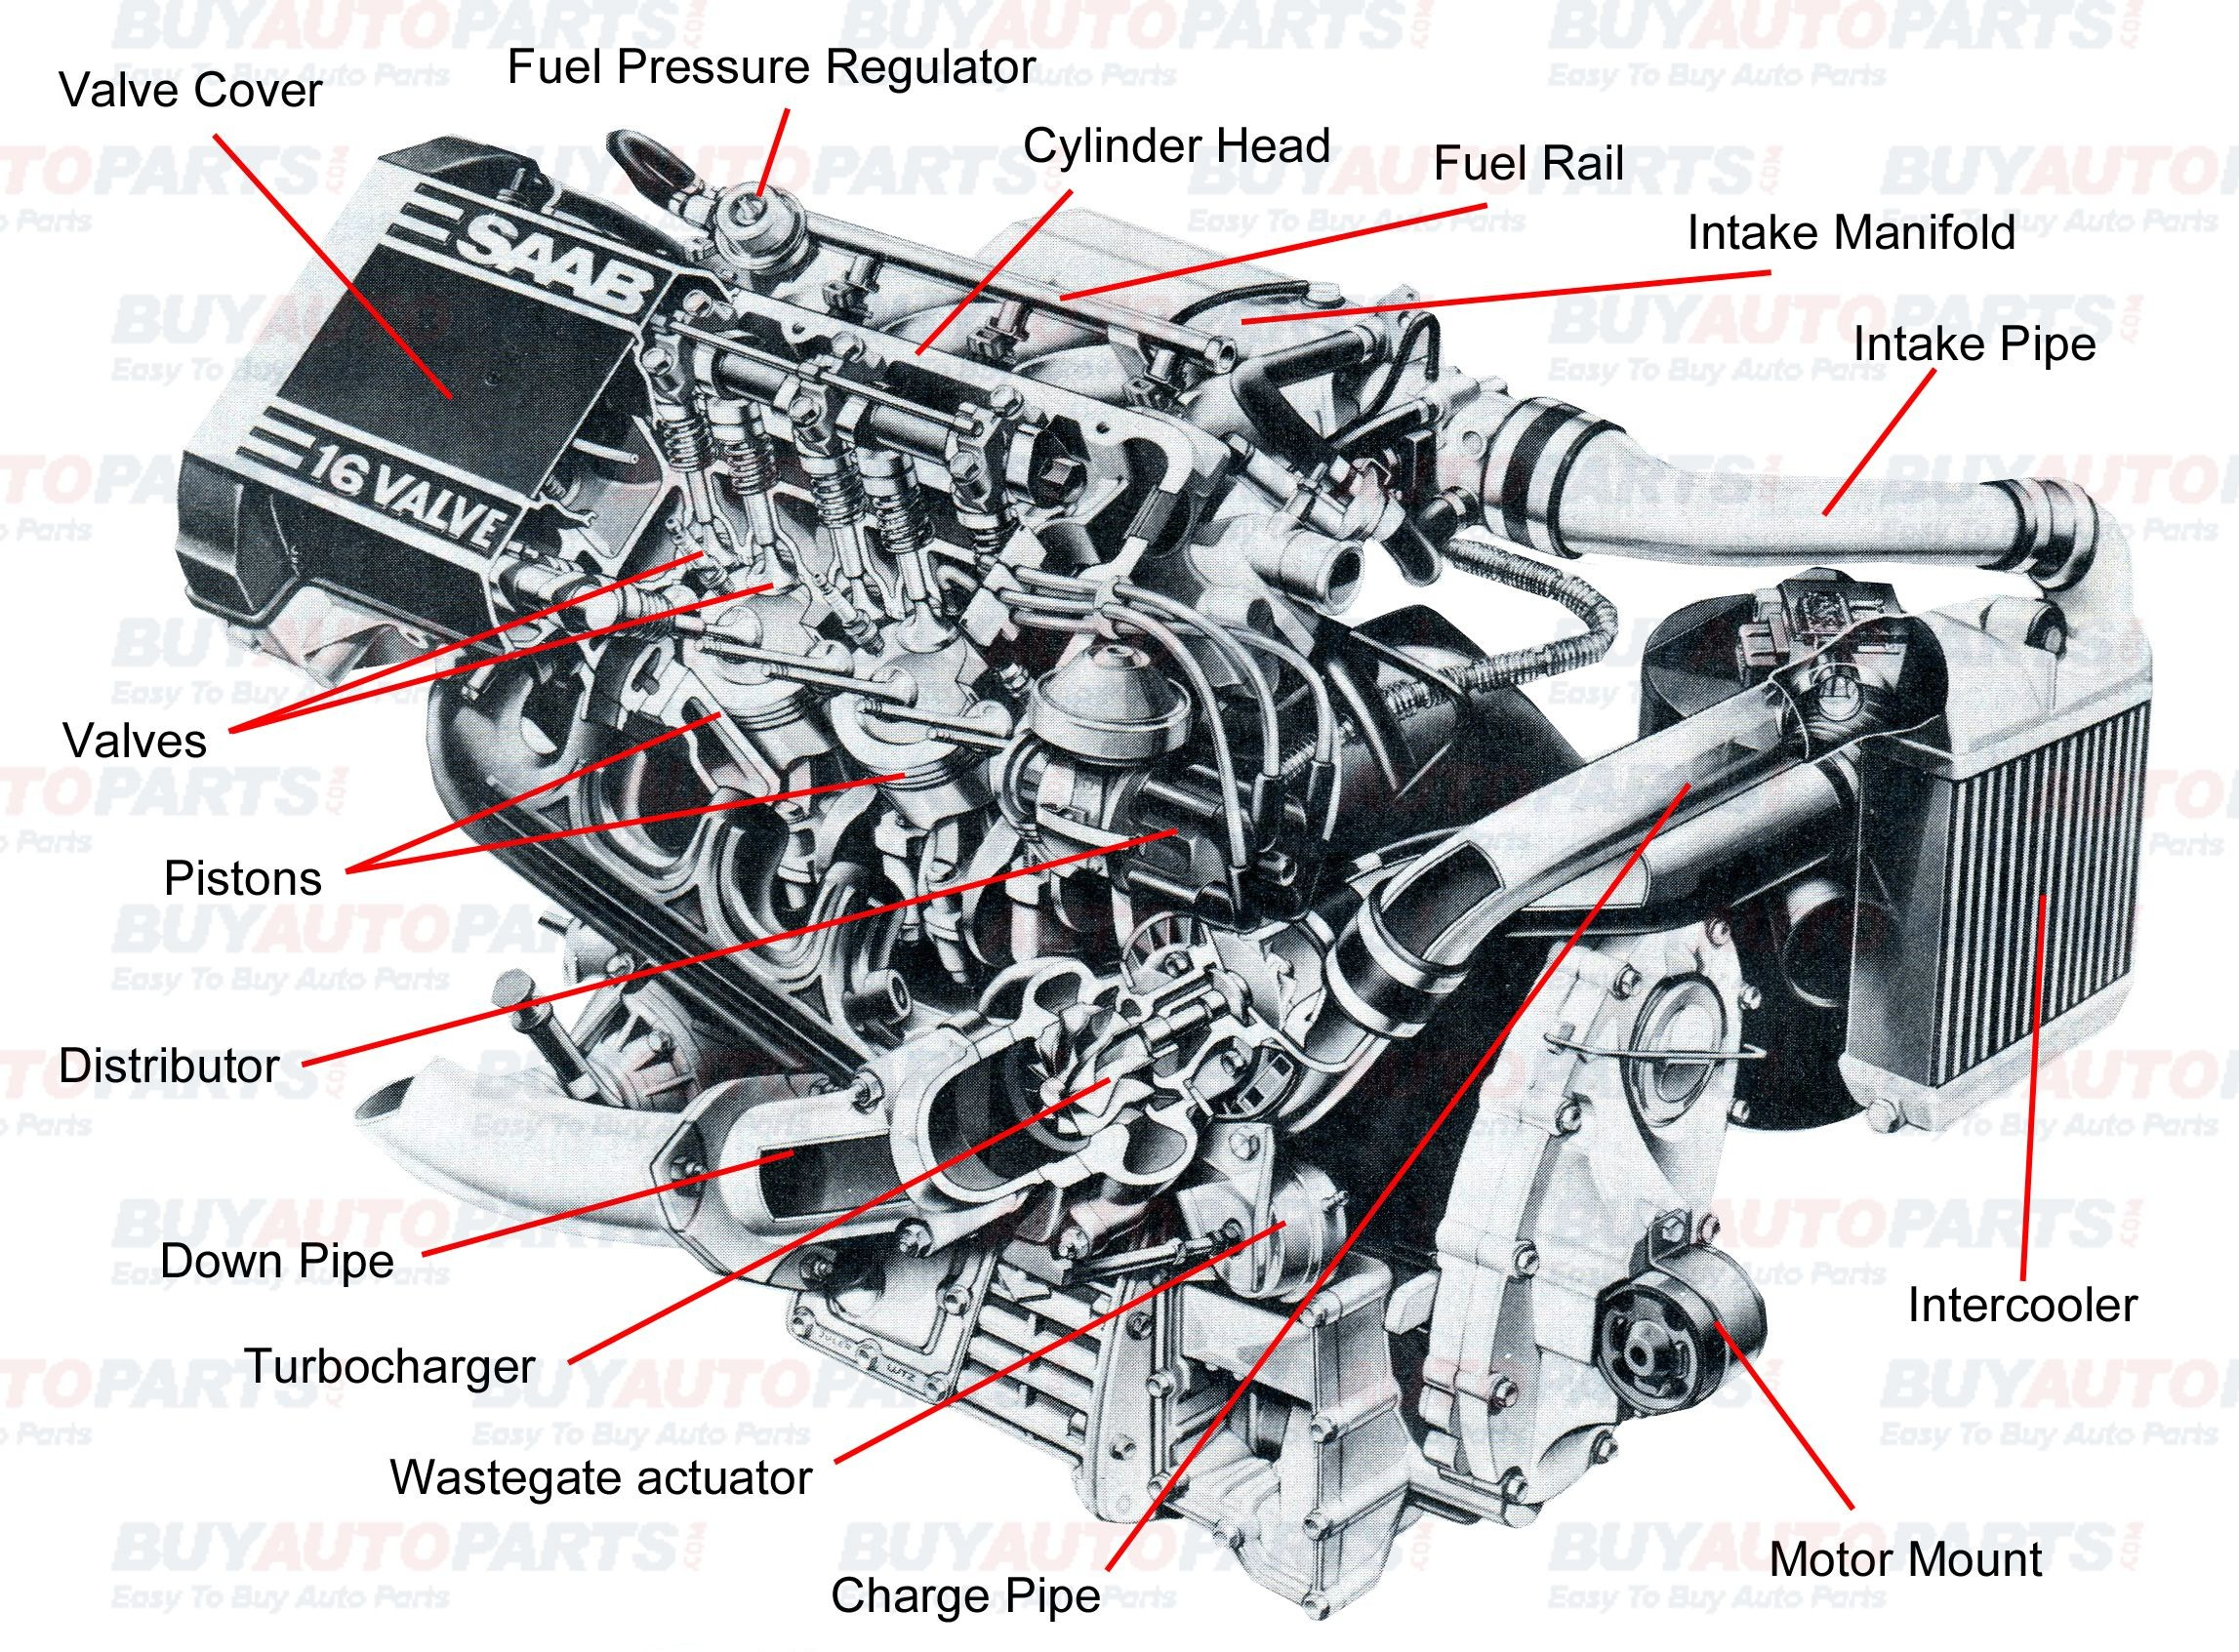 Bmw Engine Parts Diagram All Internal Bustion Engines Have the Same Basic Ponents the Of Bmw Engine Parts Diagram